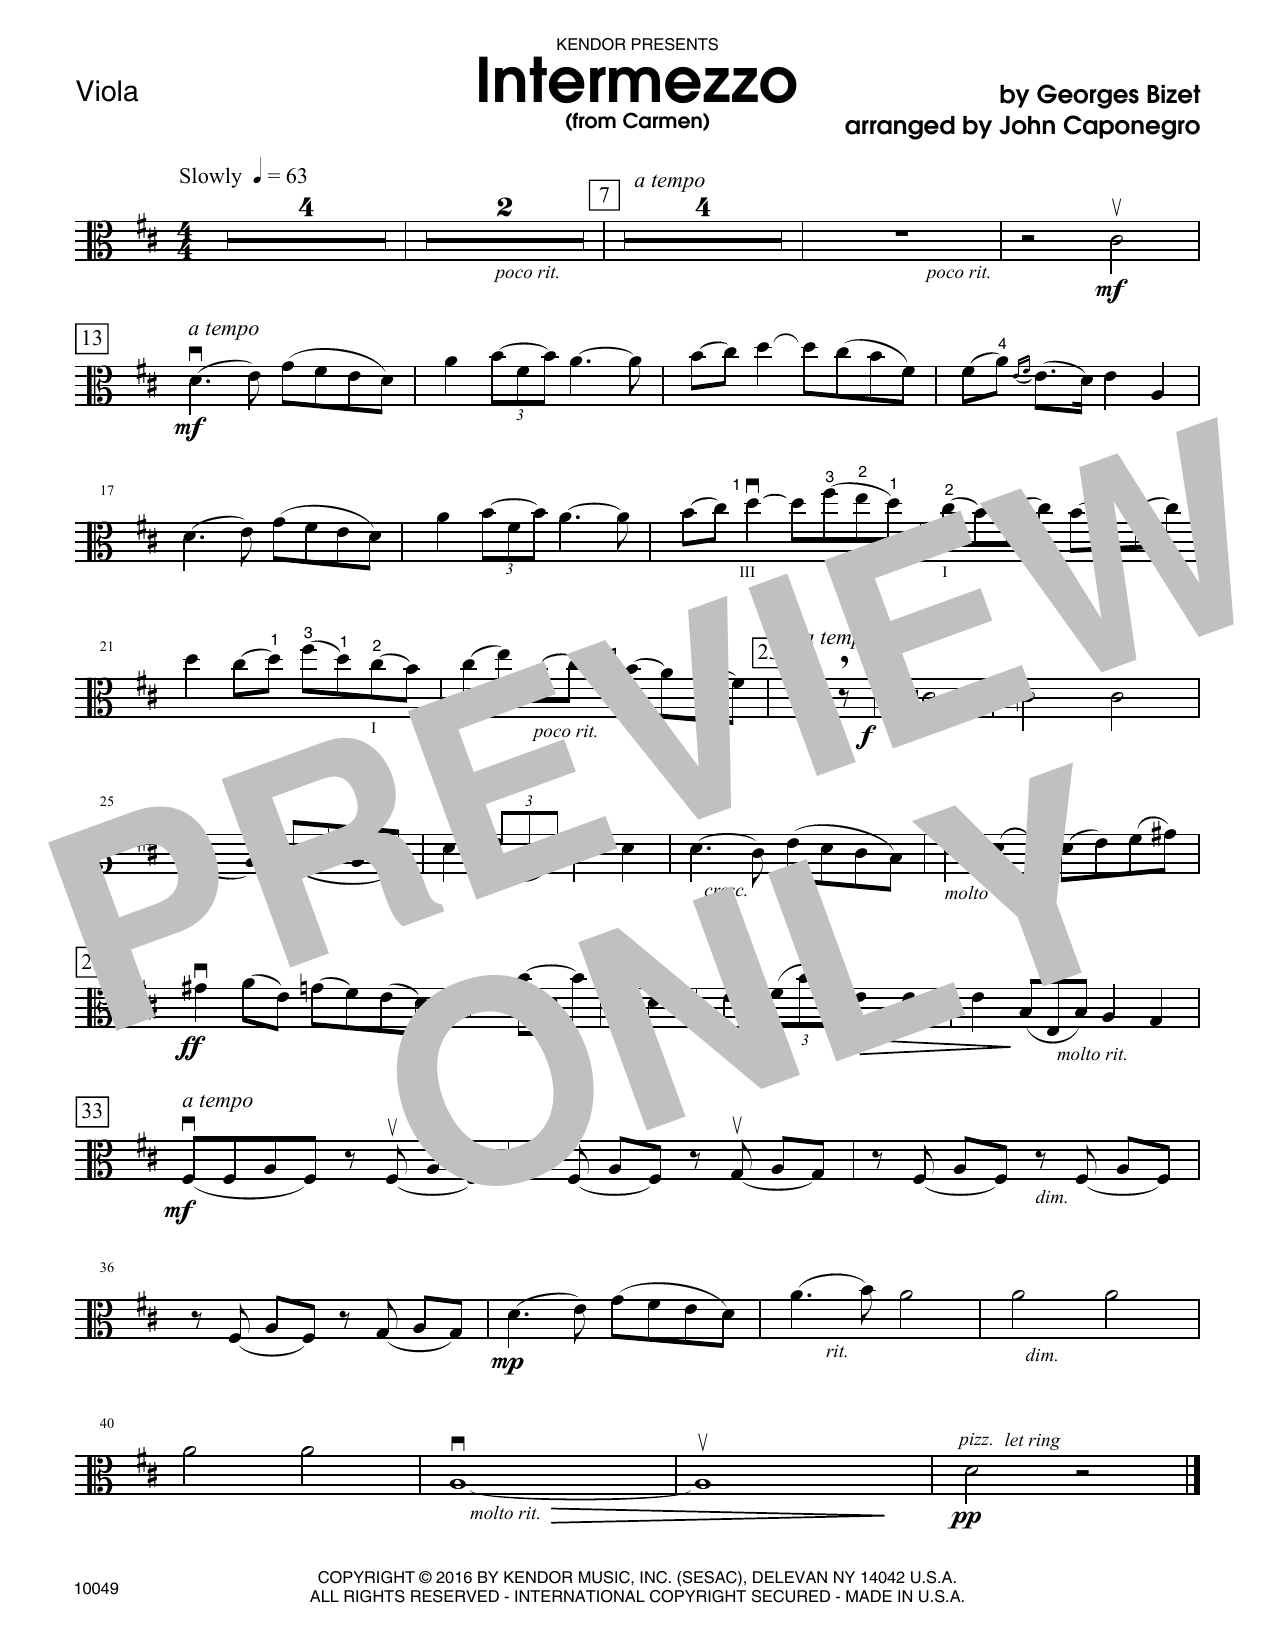 Caponegro Intermezzo (from Carmen) - Viola sheet music notes and chords. Download Printable PDF.